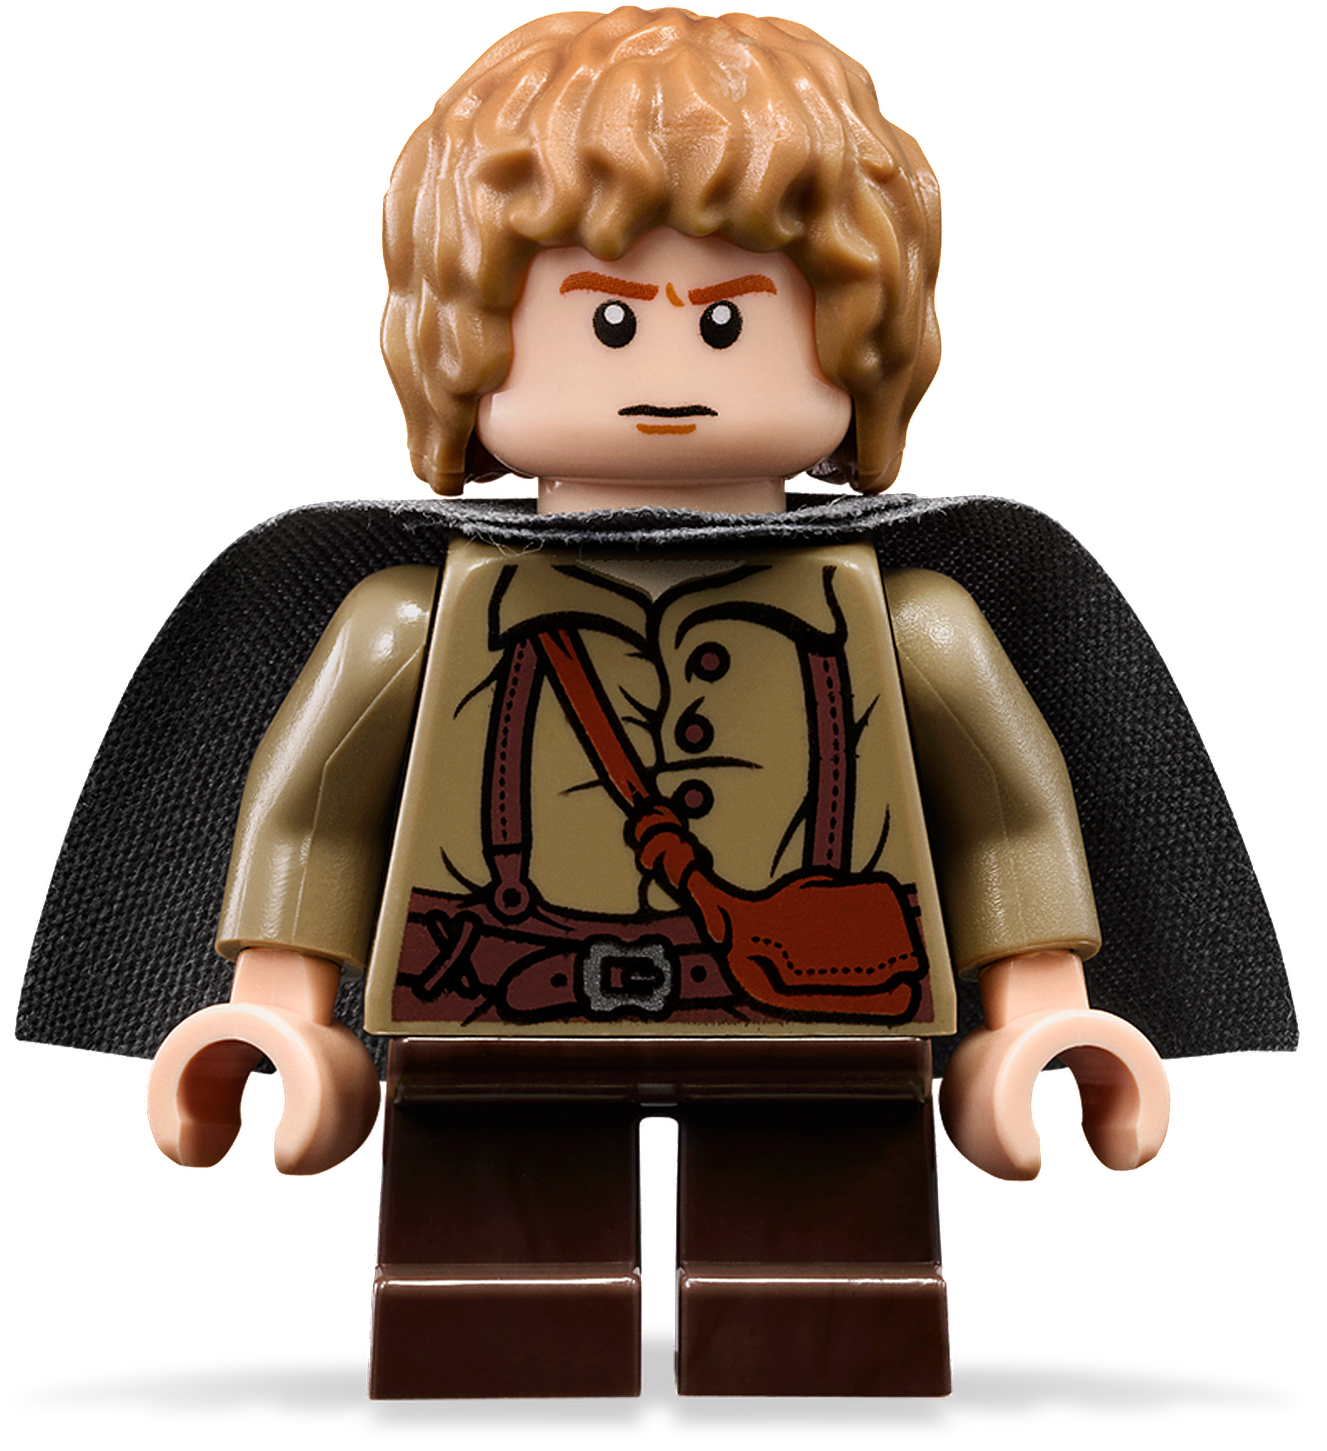 Lego Frodo Samwise Gollum authentic minifigures Lord of the rings 9470 NEW!